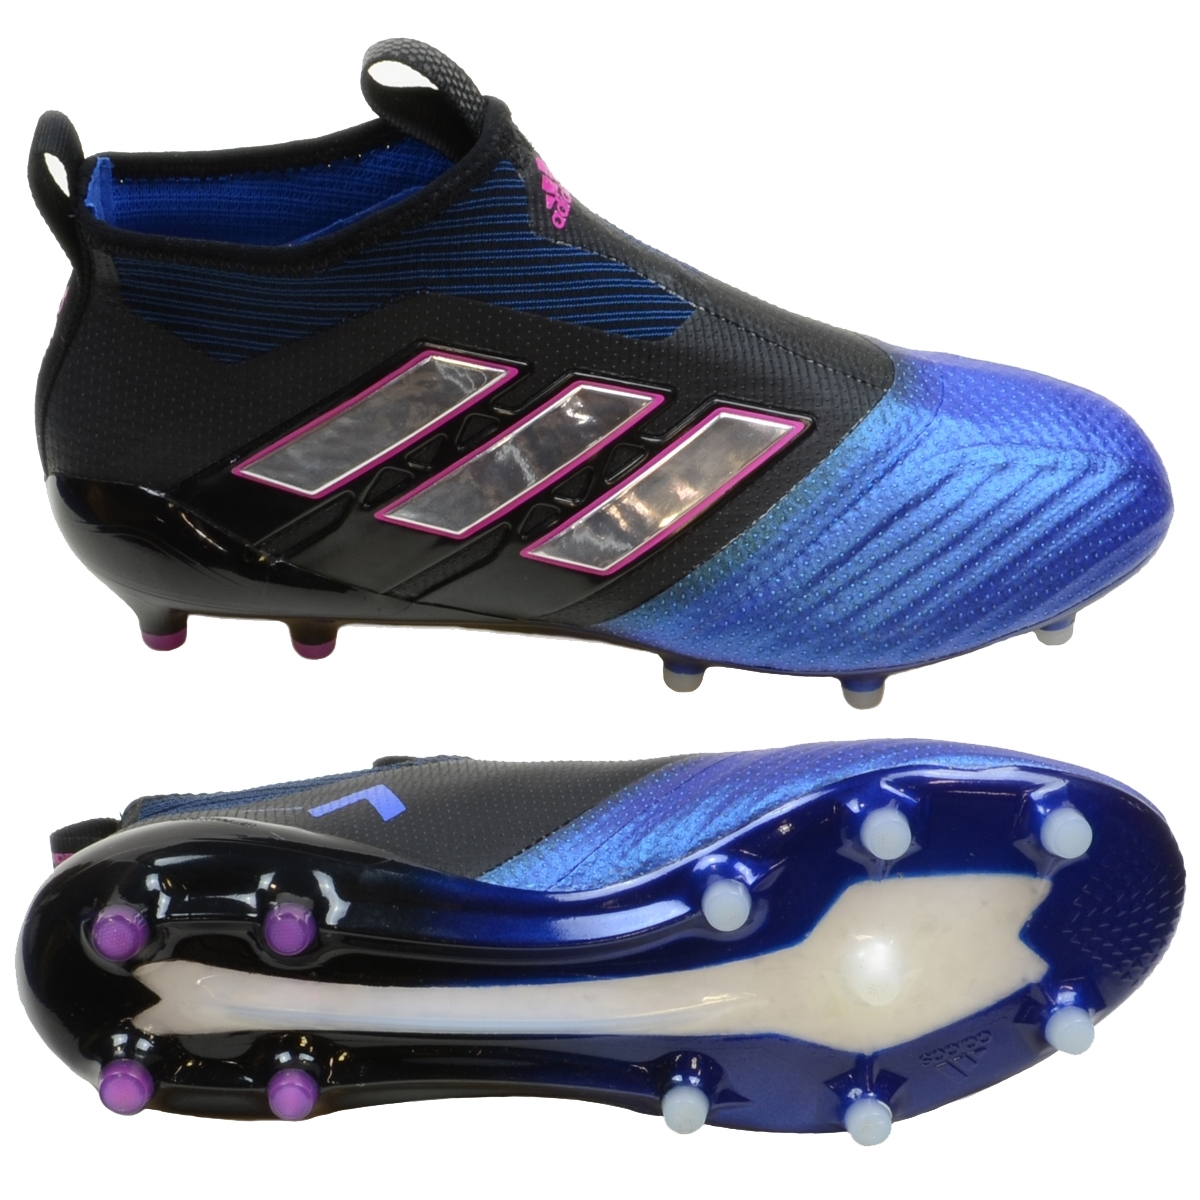 ADIDAS ACE 17+ Purecontrol FG Mens Football Boots Black Blue